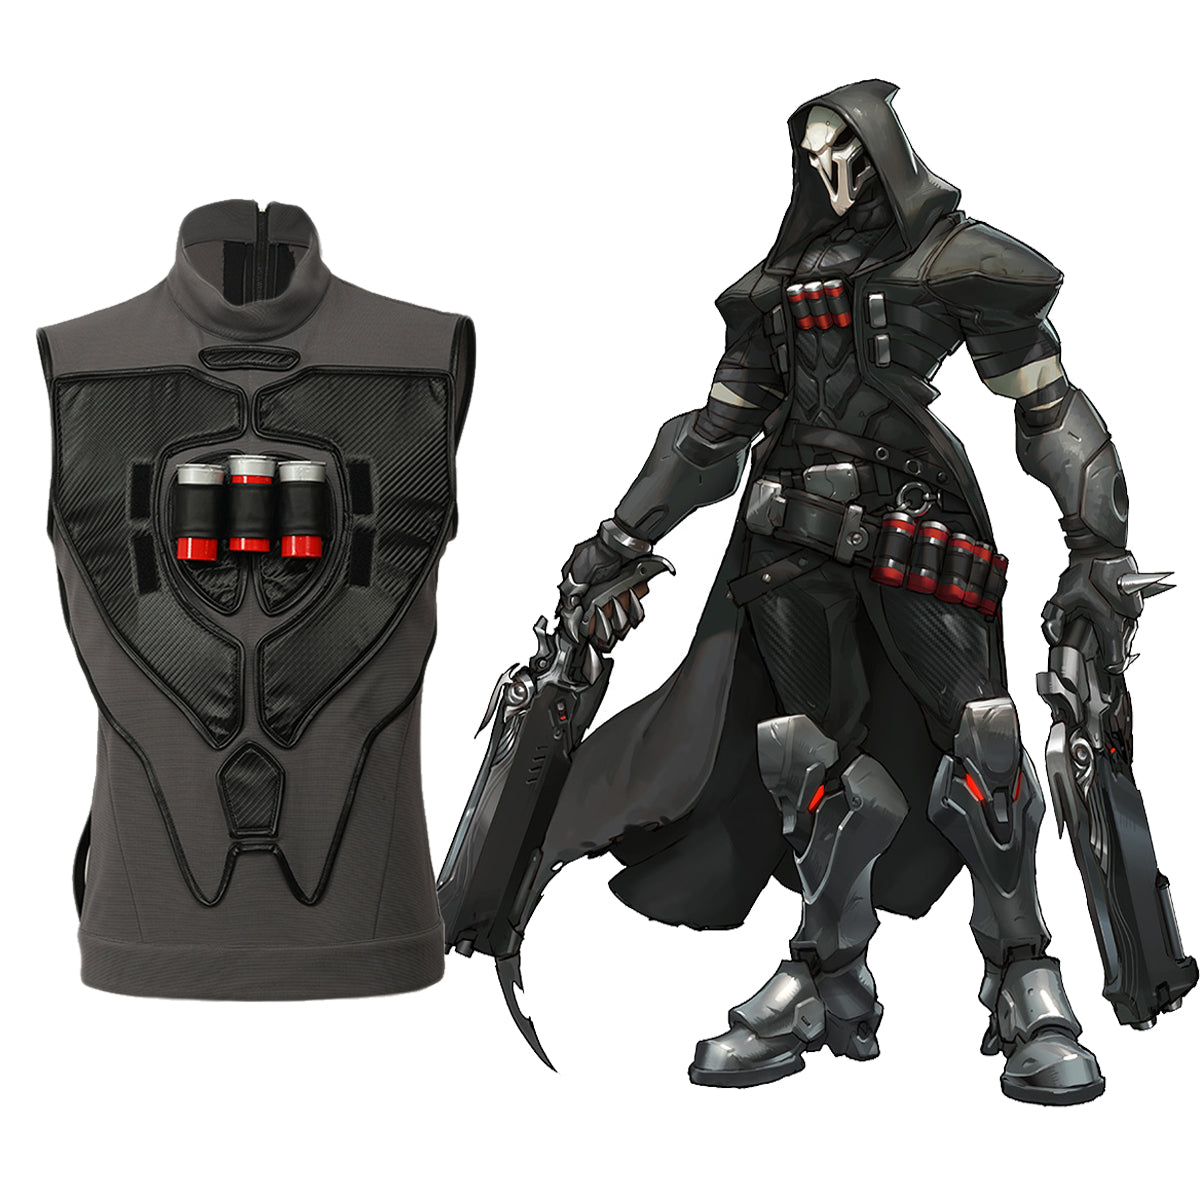 Overwatch Cosplay Costume Accessory Reaper Gabriel Reyes Black Chest Armor V1